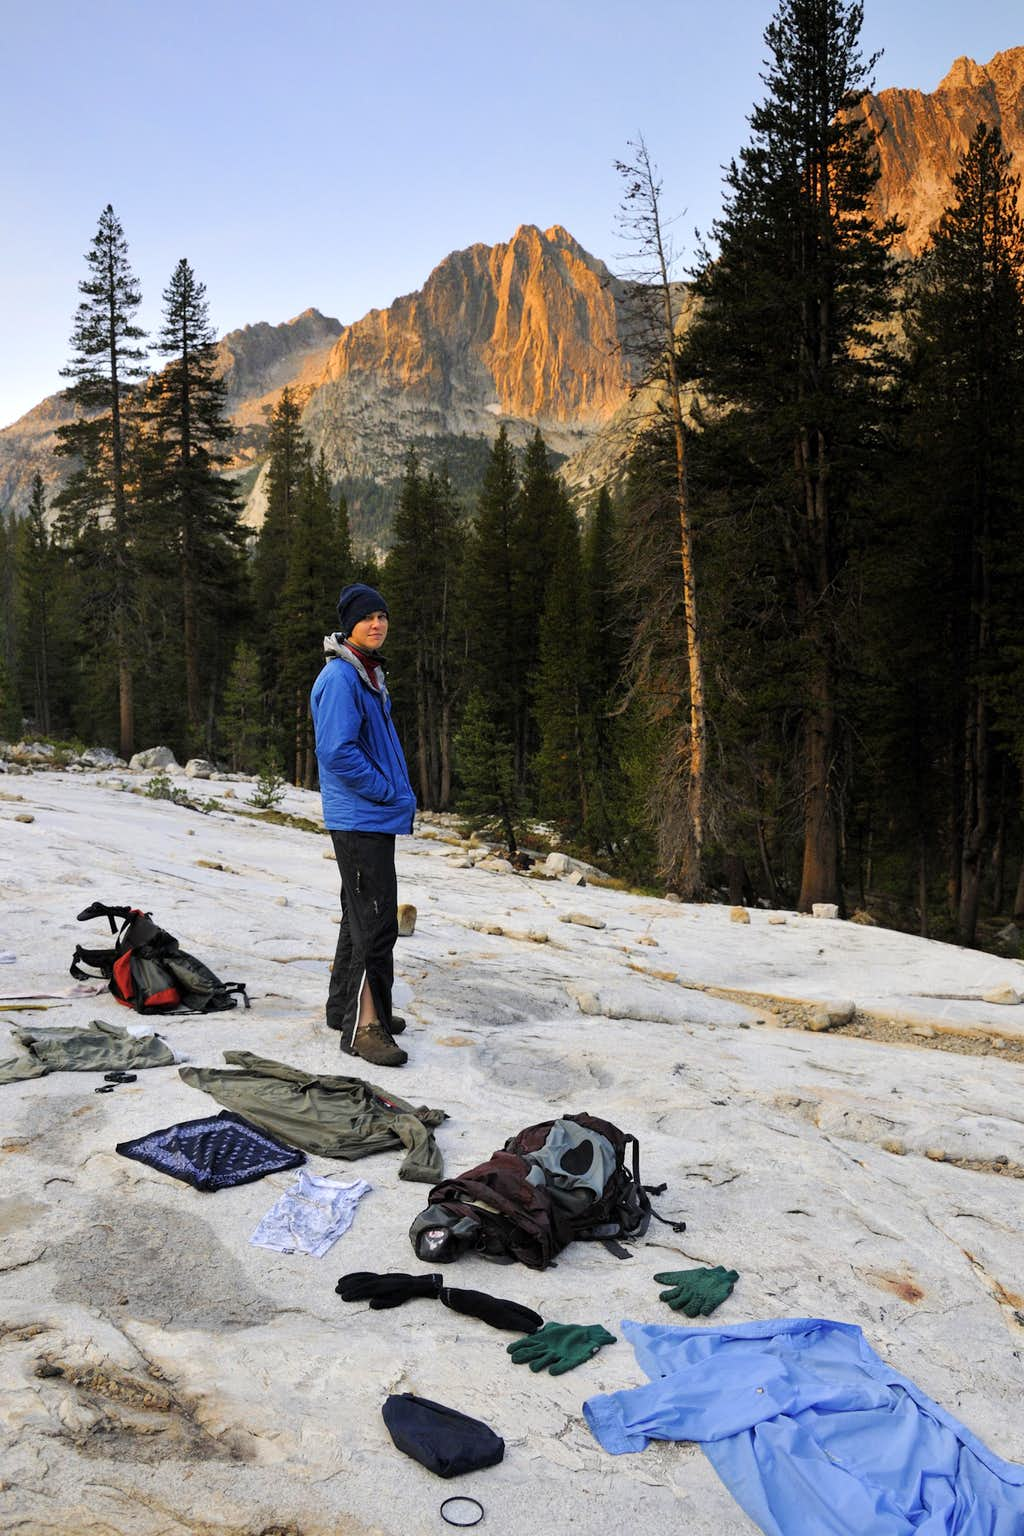 Drying Out in Le Conte Canyon